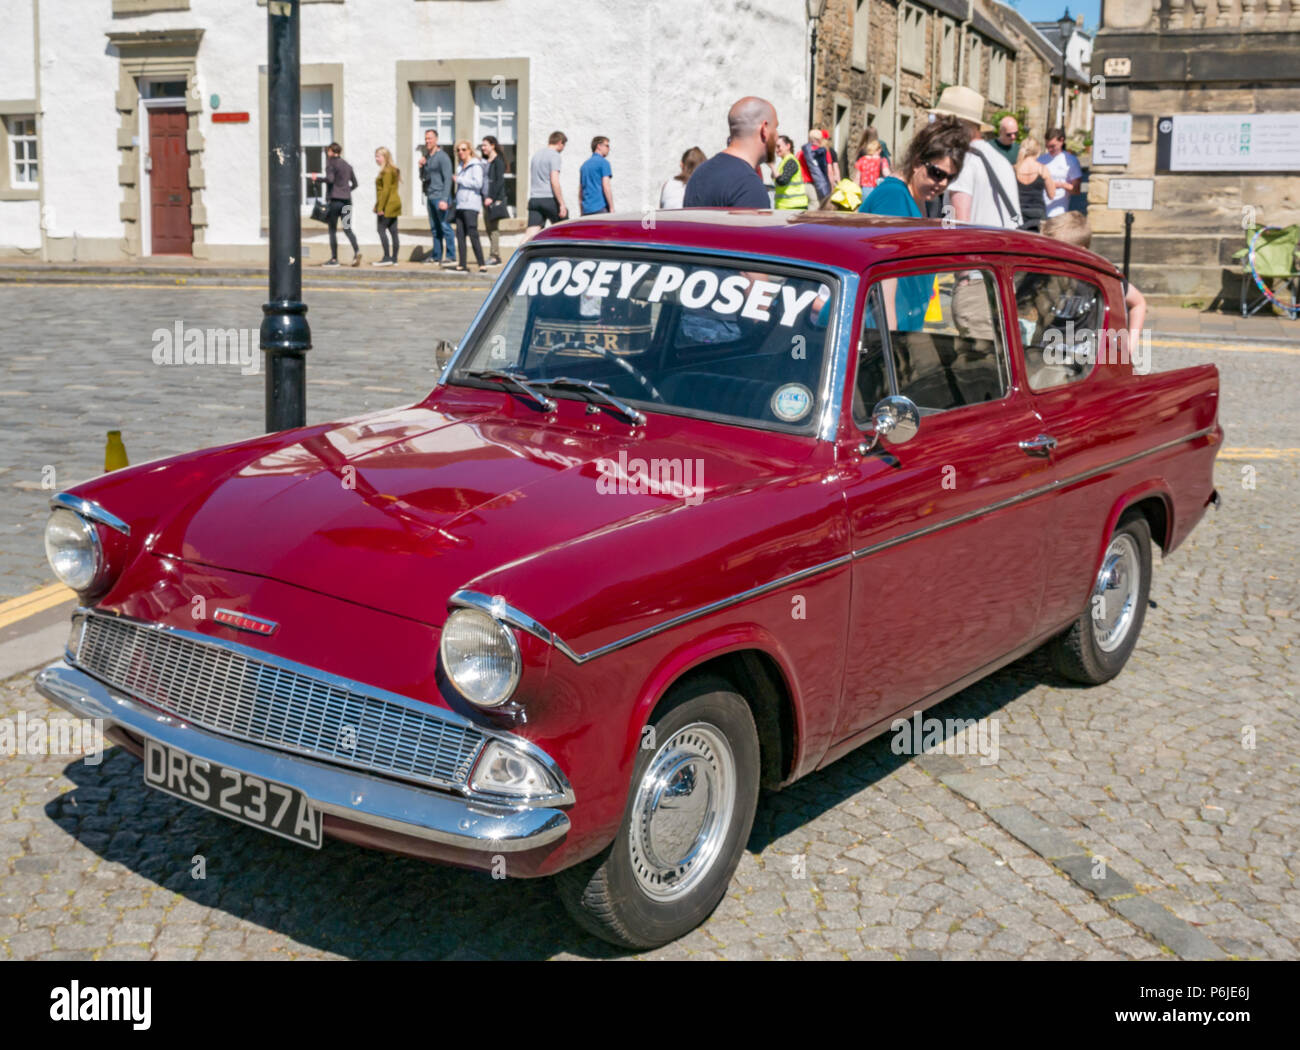 Maroon Vintage Car Stock Photos & Maroon Vintage Car Stock Images ...